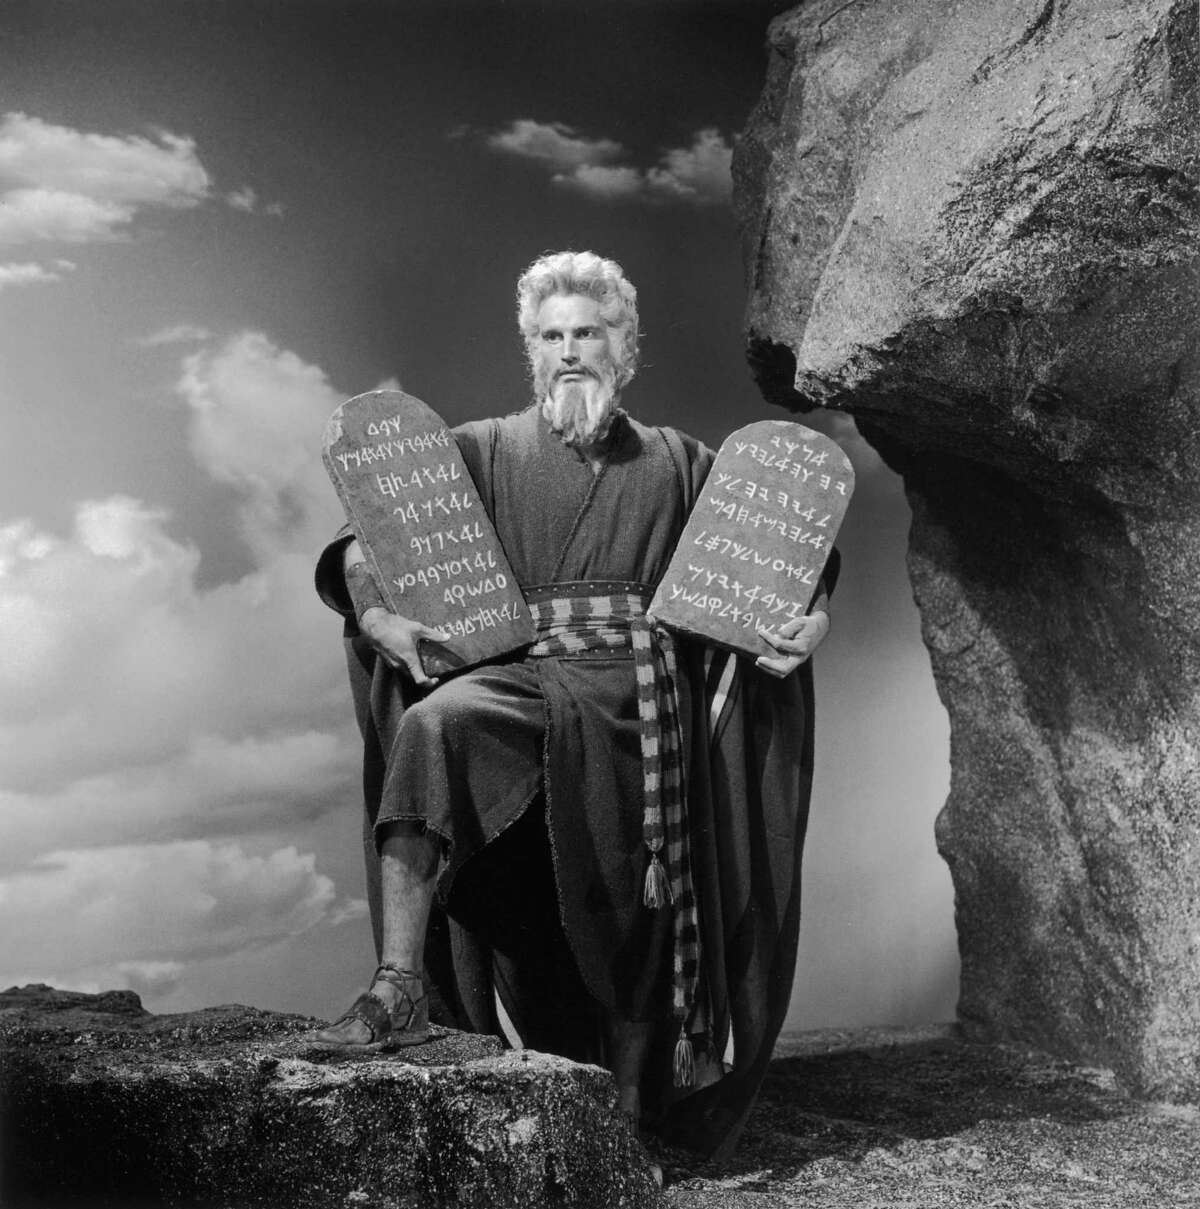 """Moses Issue: The Texas Freedom Network said multiple textbooks incorrectly link foundational elements of American democracy and legal tradition to the teachings of Moses and other religious leaders. For example, Pearson Education's American government textbook says the Constitution was part of a """"tradition familiar with the Ten Commandments as a guide for moral behavior."""" McGraw-Hill states the Constitution was based in part on the Judeo-Christian concept of a covenant between a people and their God. Outcome: These passages remain because Texas curriculum standards require the teaching of Moses in social studies classes."""